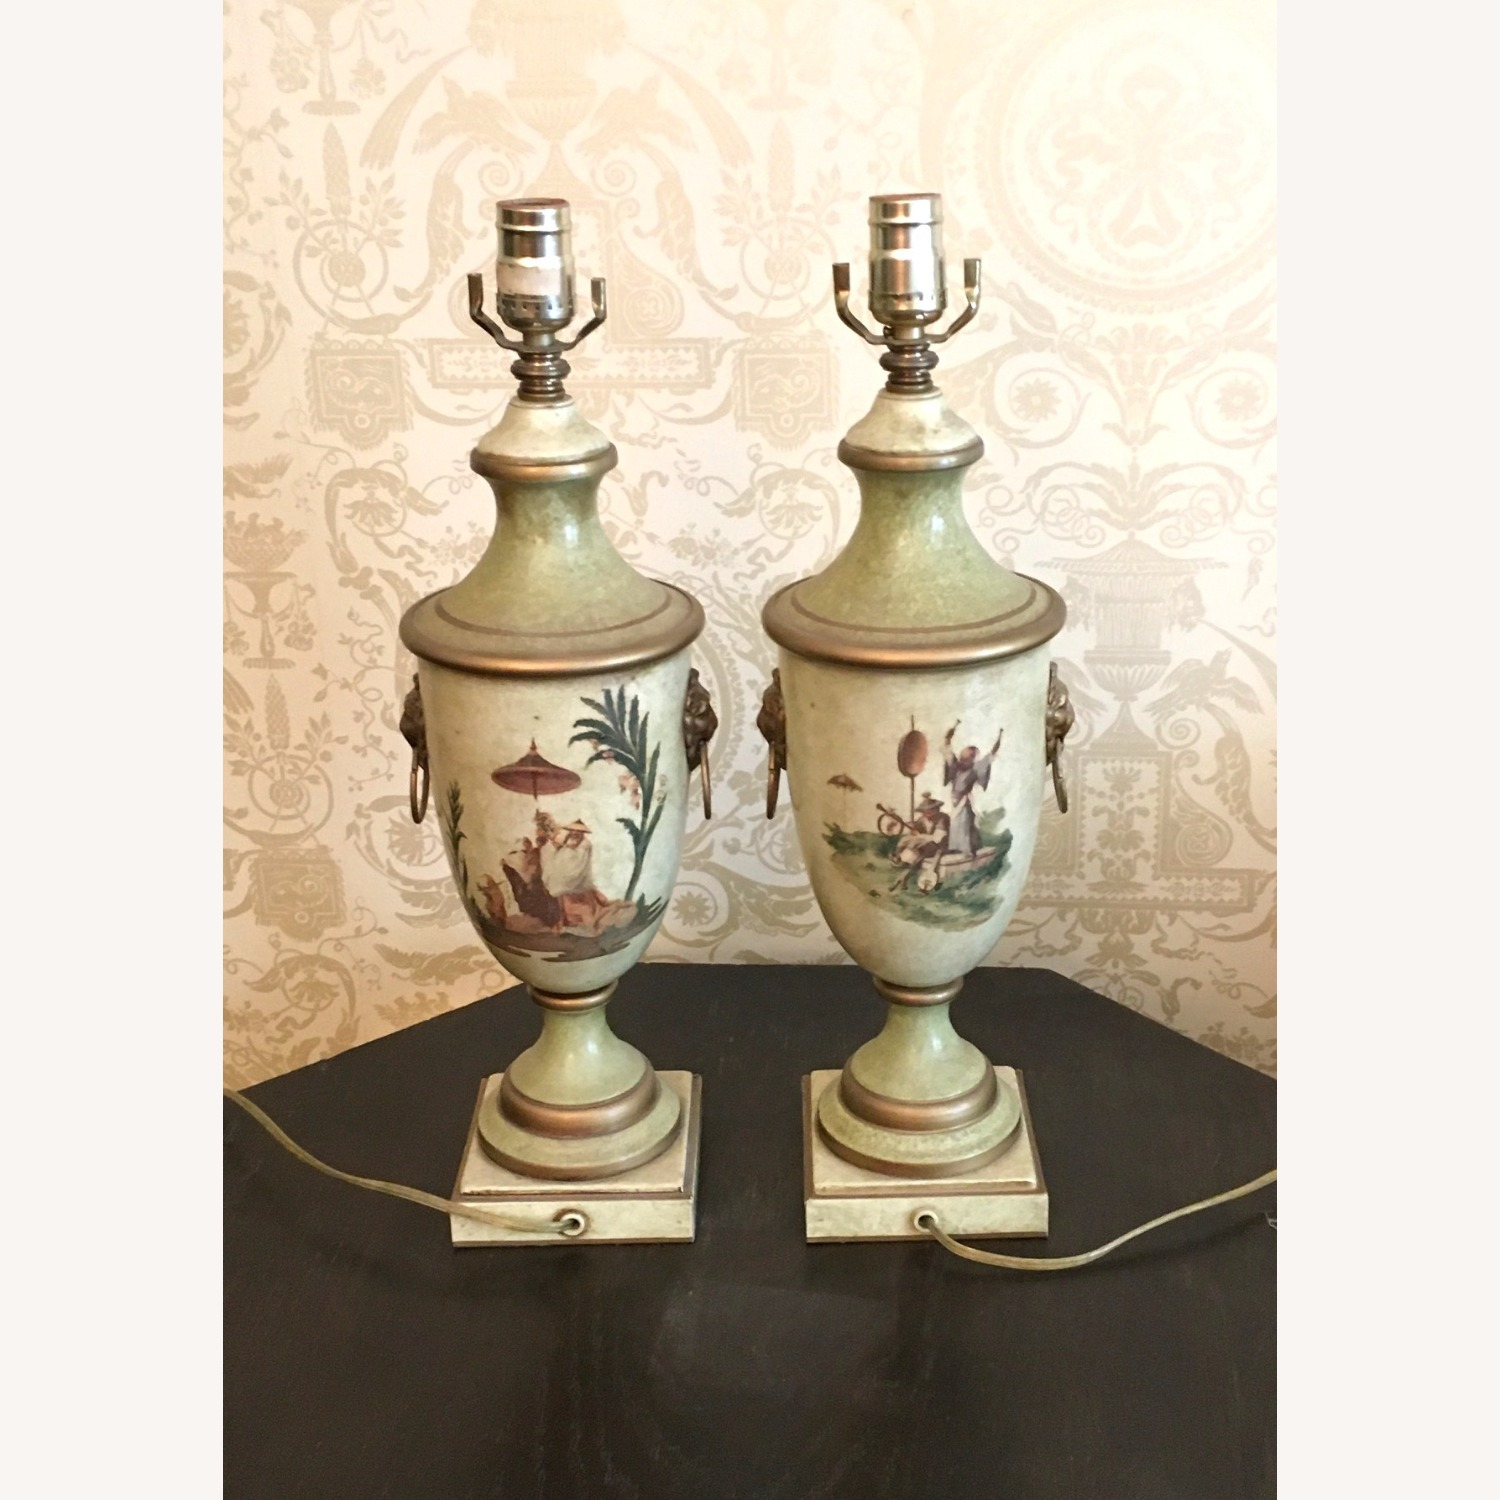 Pair of Hand Painted Asian Theme Toleware Lamps - image-3